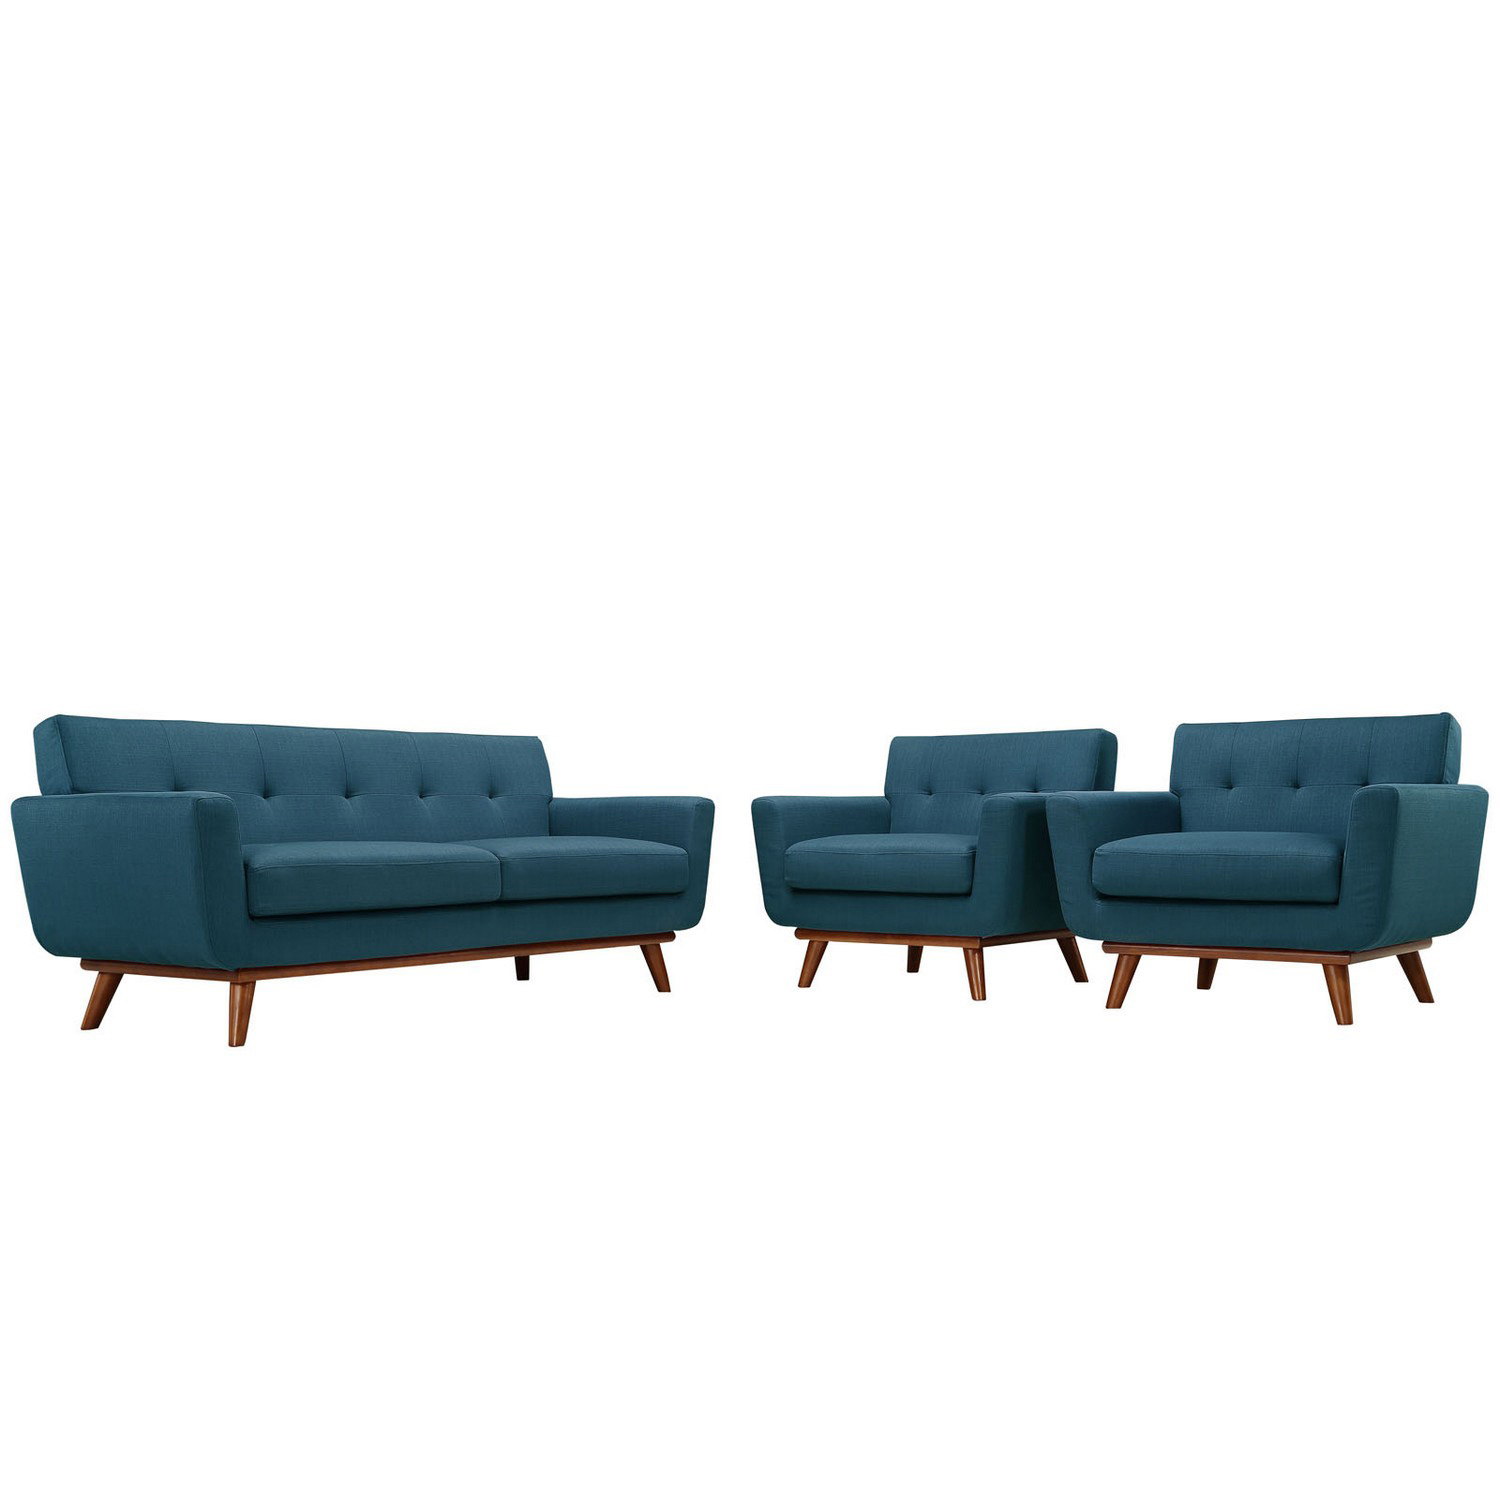 Modway Engage Armchairs and Loveseat Set of 3 - Azure